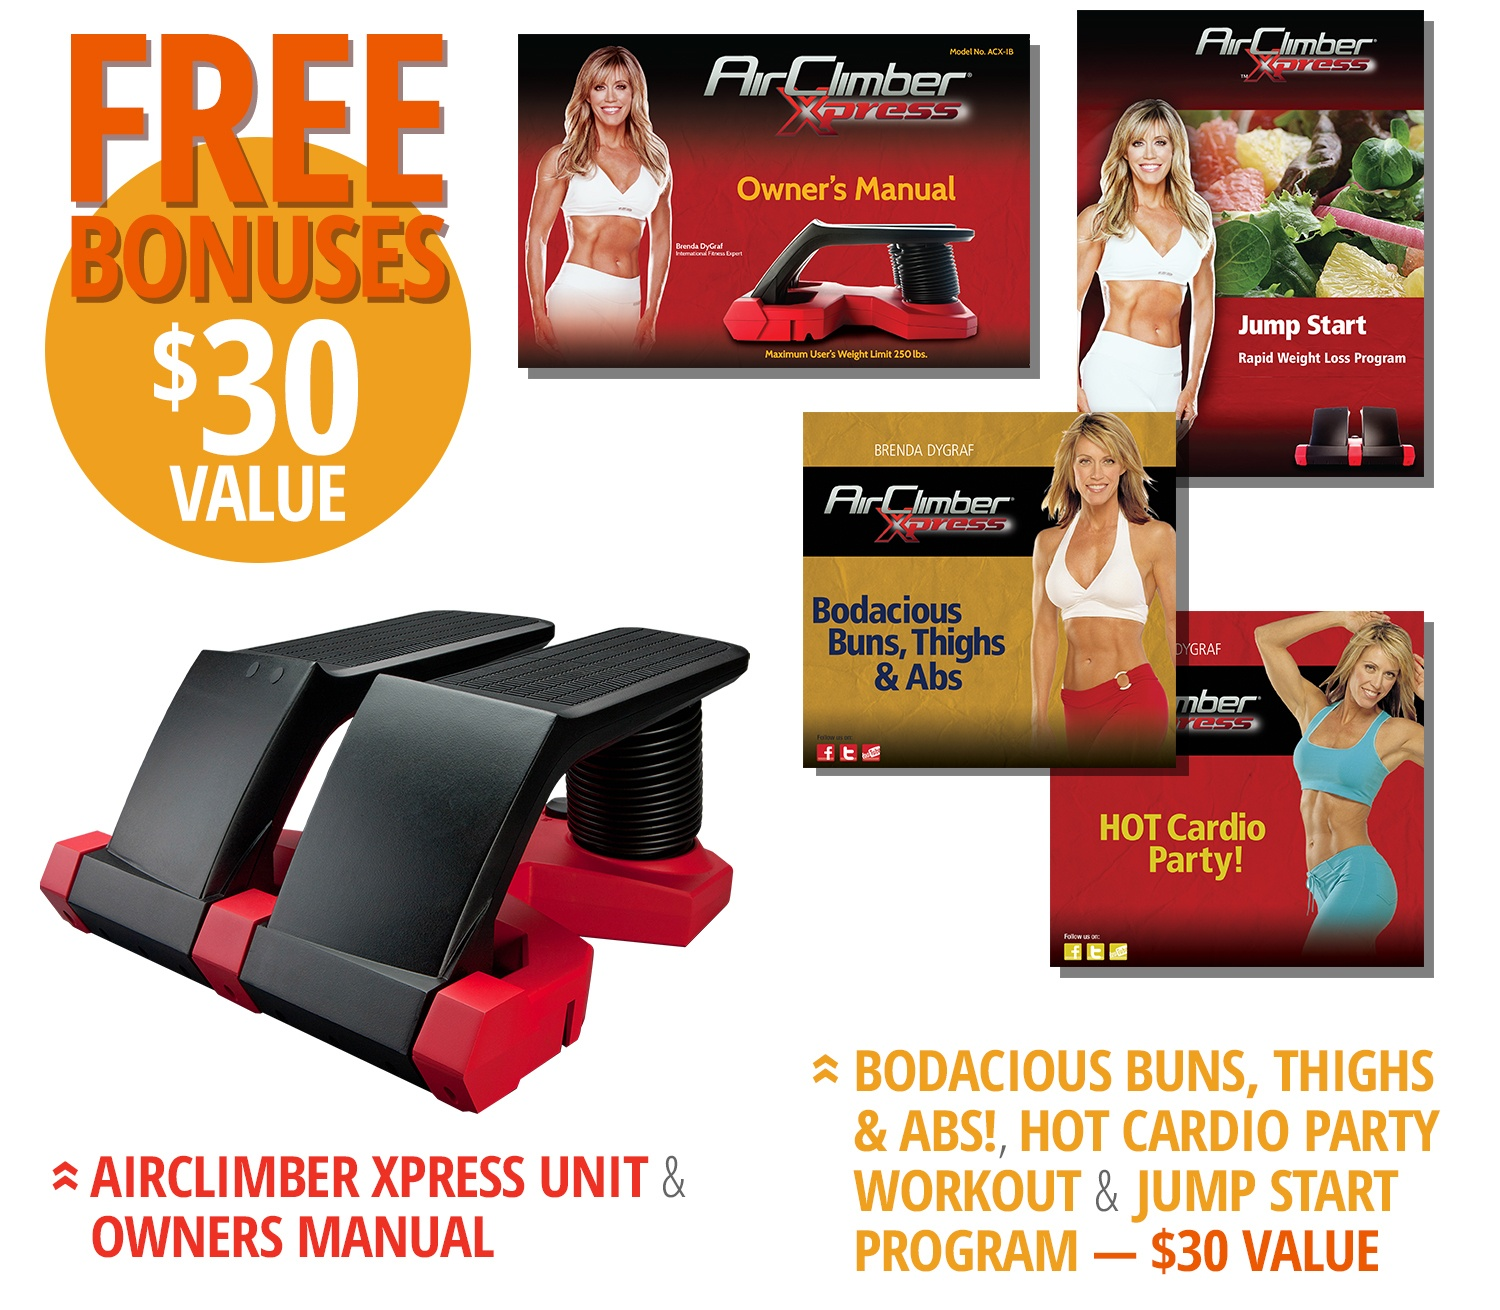 "free bonuses ($30 value) –  includes AirClimber Xpress unit, owner's manual, ""bodacious buns, thighs & abs"", hot cardio party workout, jump-start eating plan"